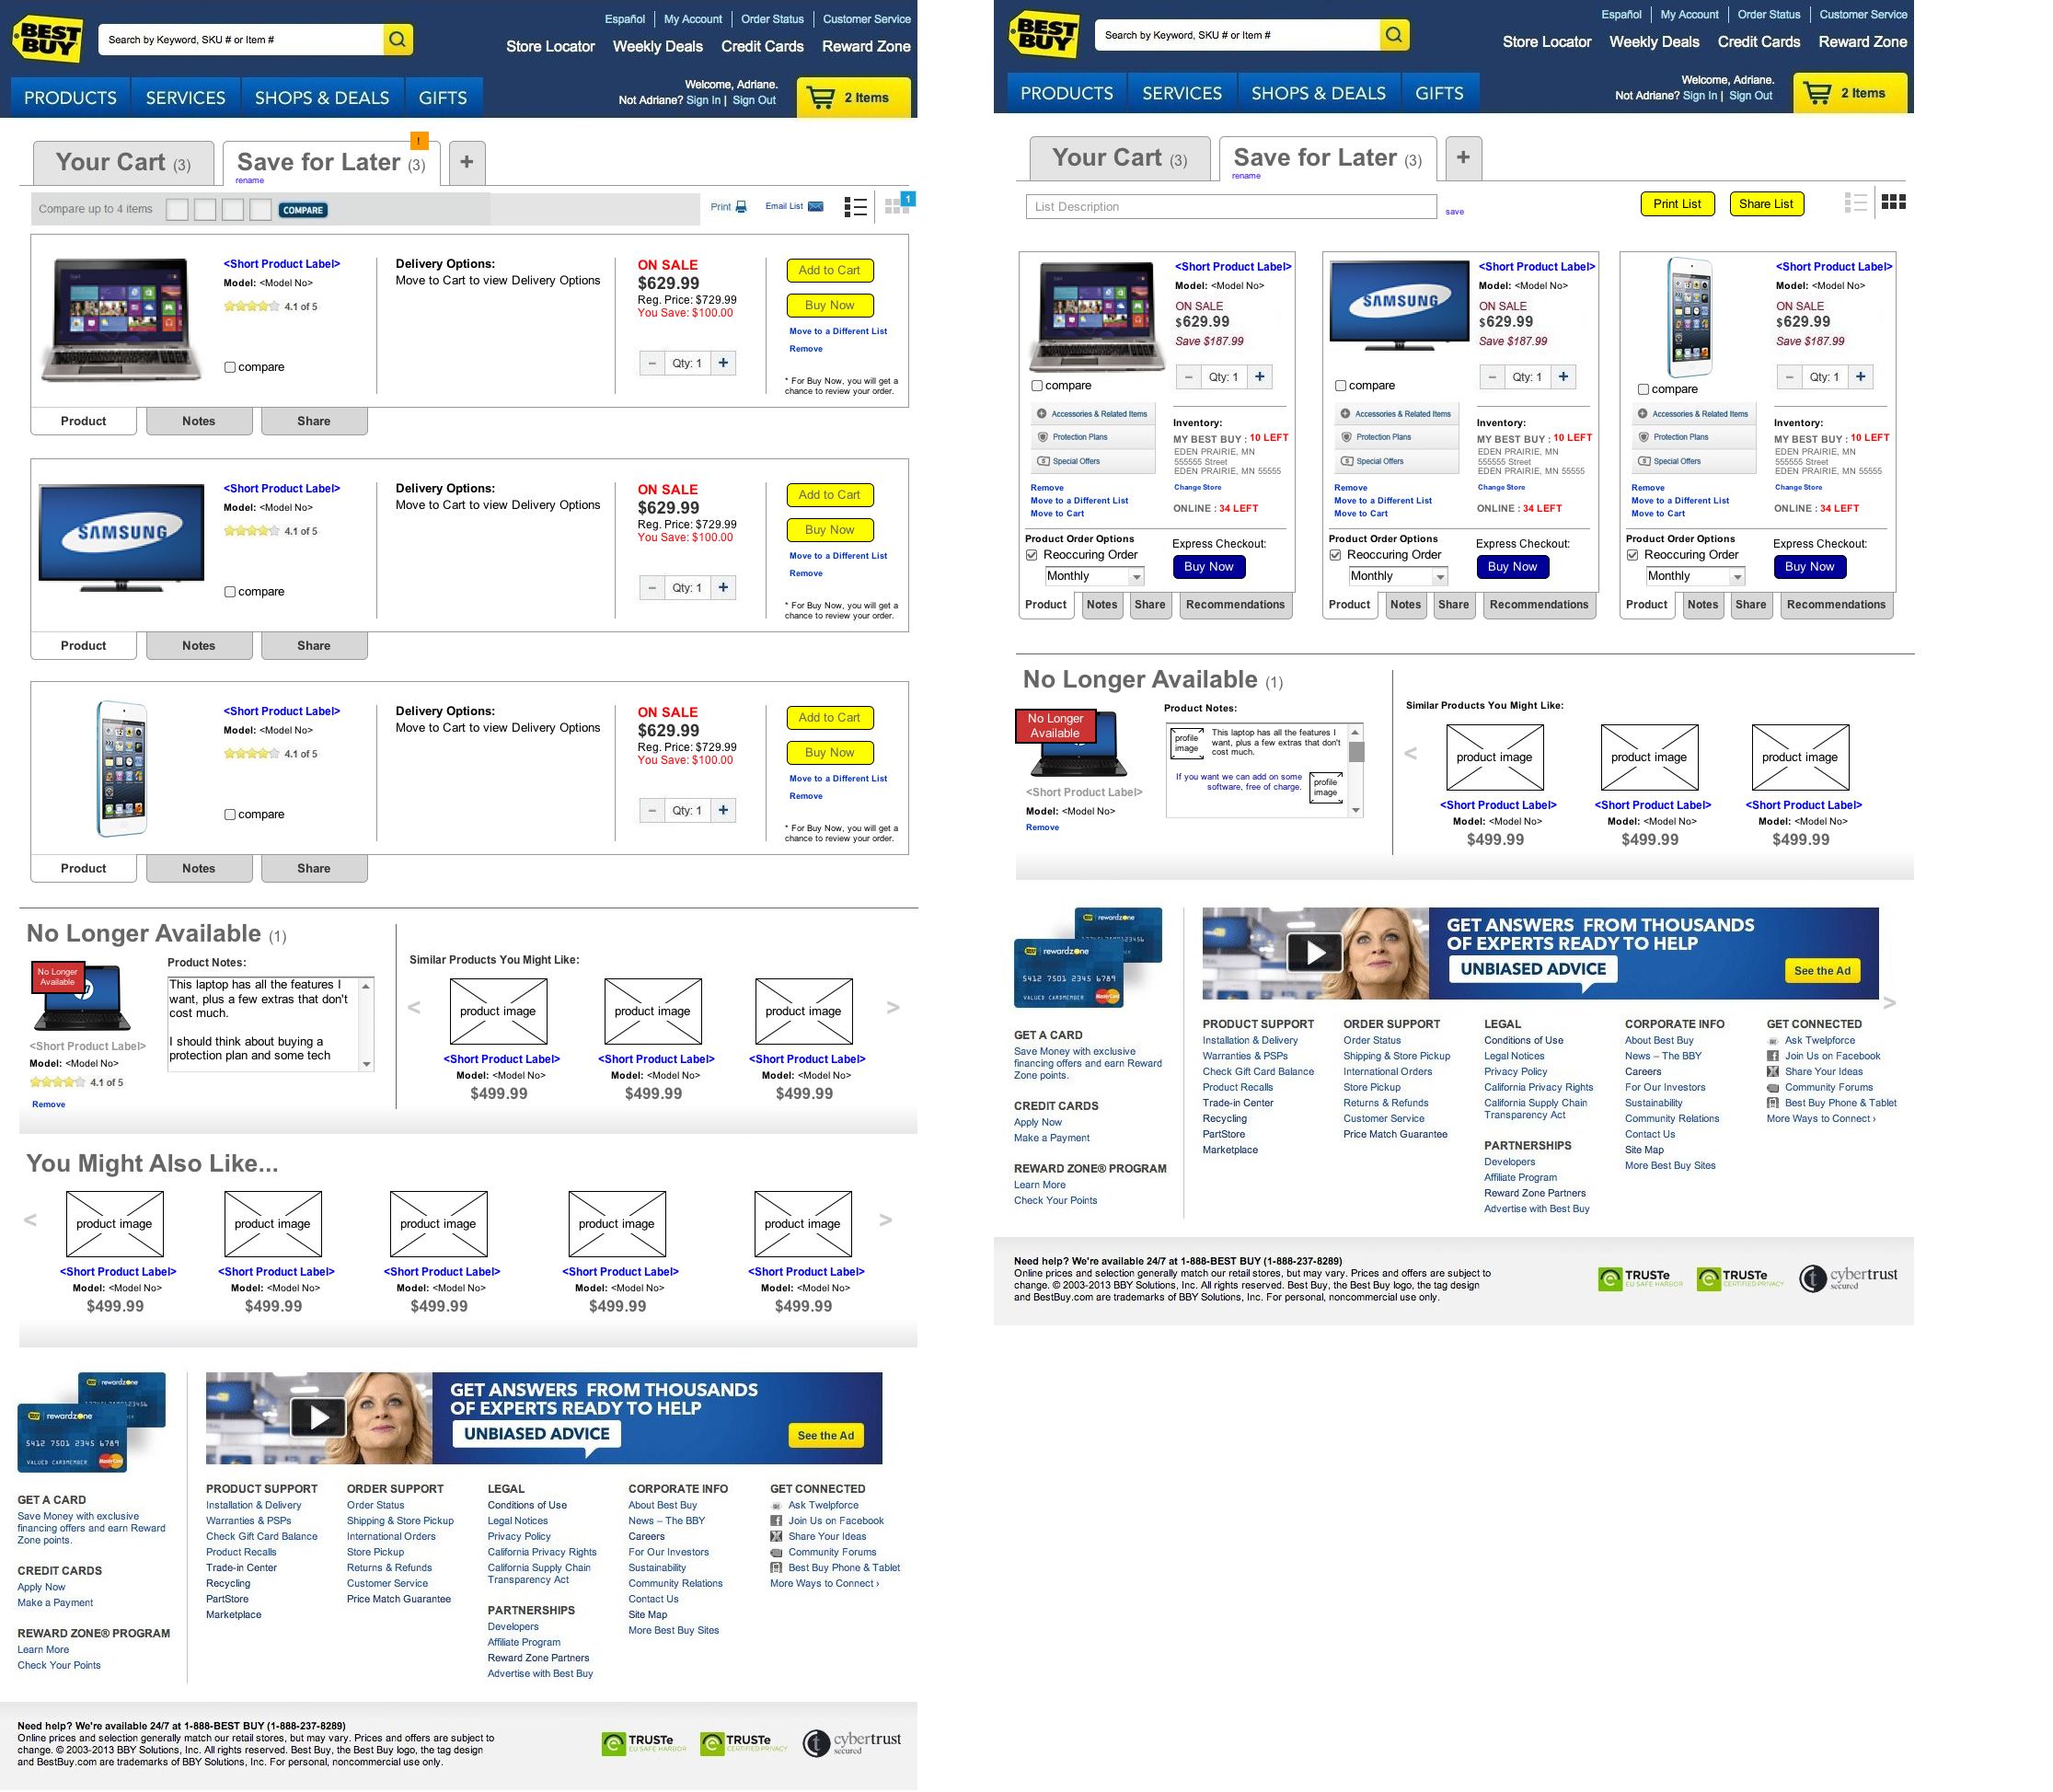 Best Buy Save for Later Mock-ups